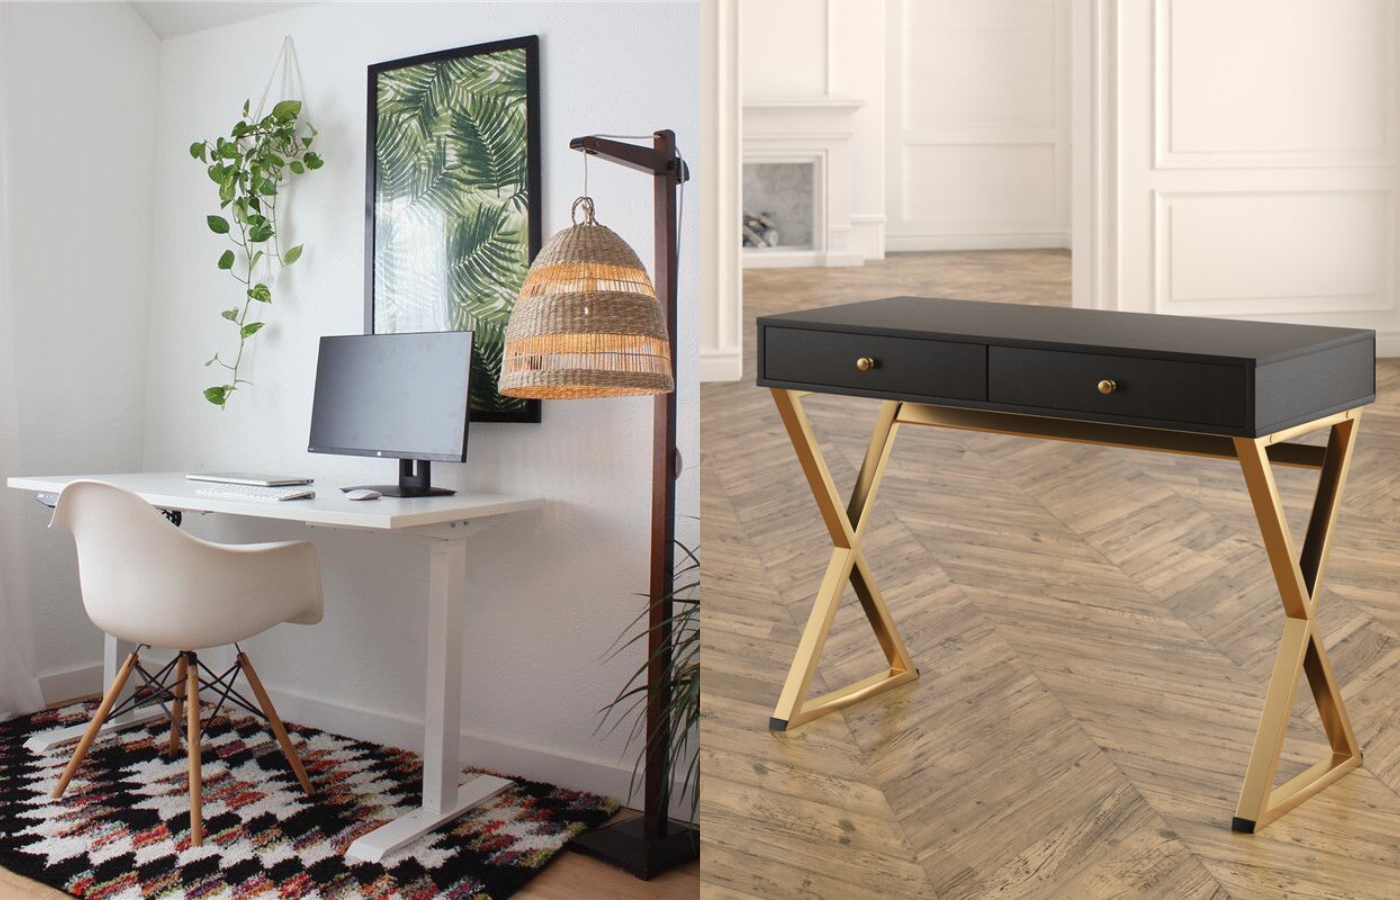 Shop These 7 Black Friday Desk Deals To Outfit Your Work From Home Setup